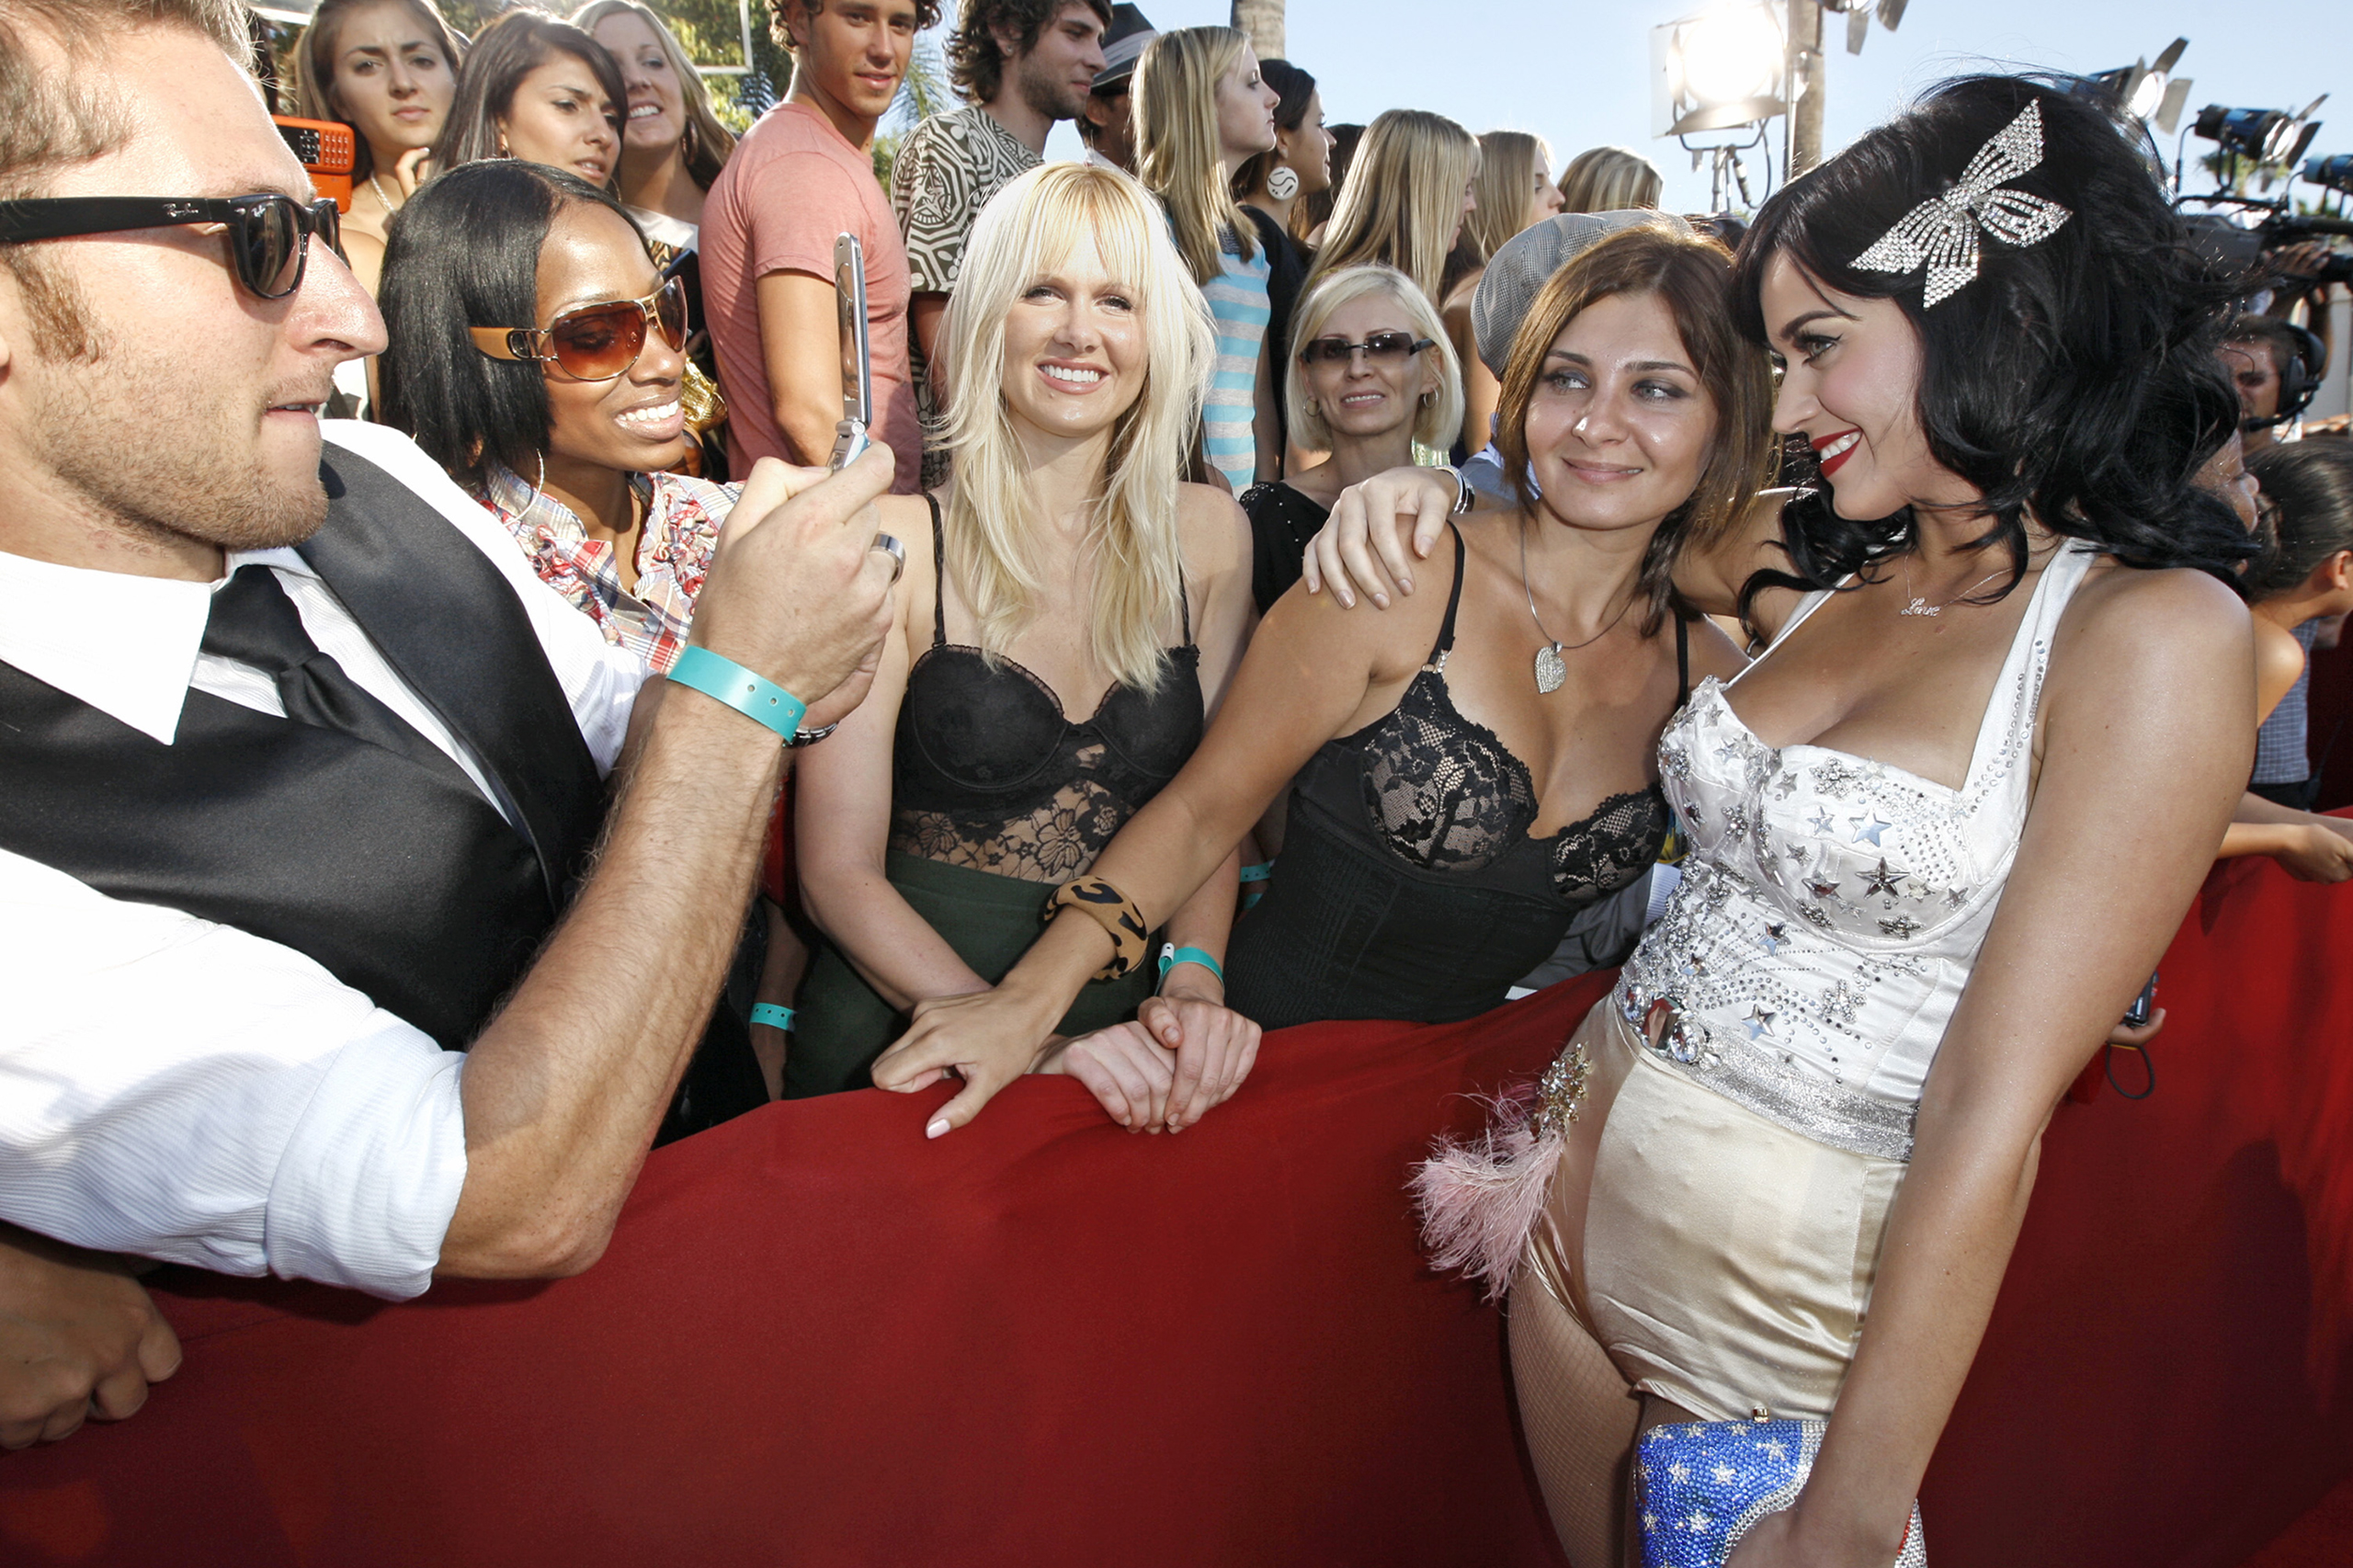 Katy Perry poses with a fan as she arrives at the 2008 MTV Video Music Awards held at Paramount Pictures Studio Lot in Los Angeles on, Sept. 7, 2008.